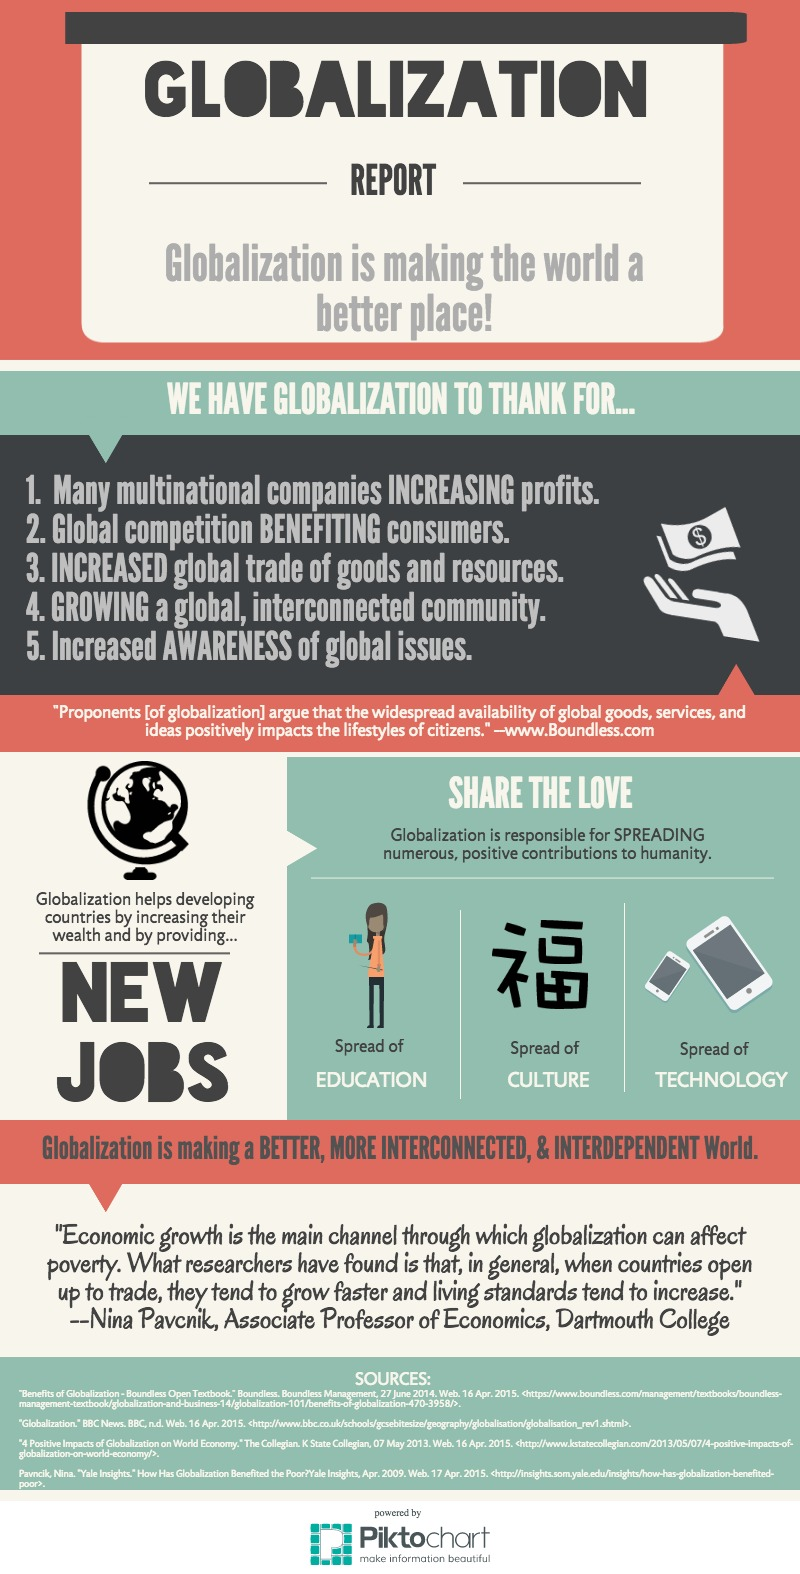 globalization infographic